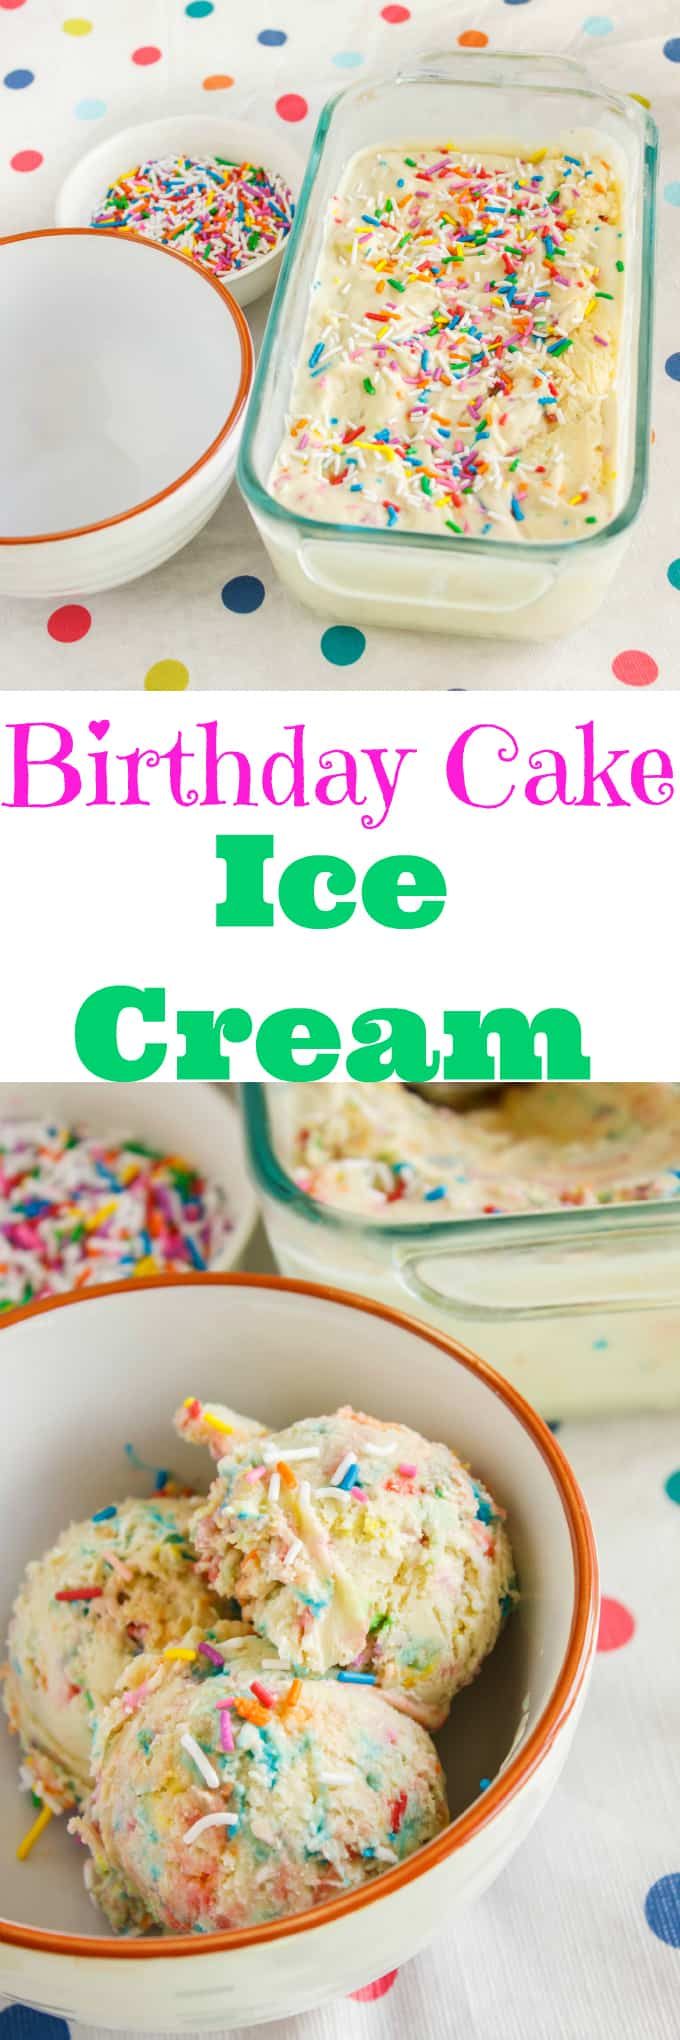 Homemade Birthday Cake Ice Cream The Cookie Writer